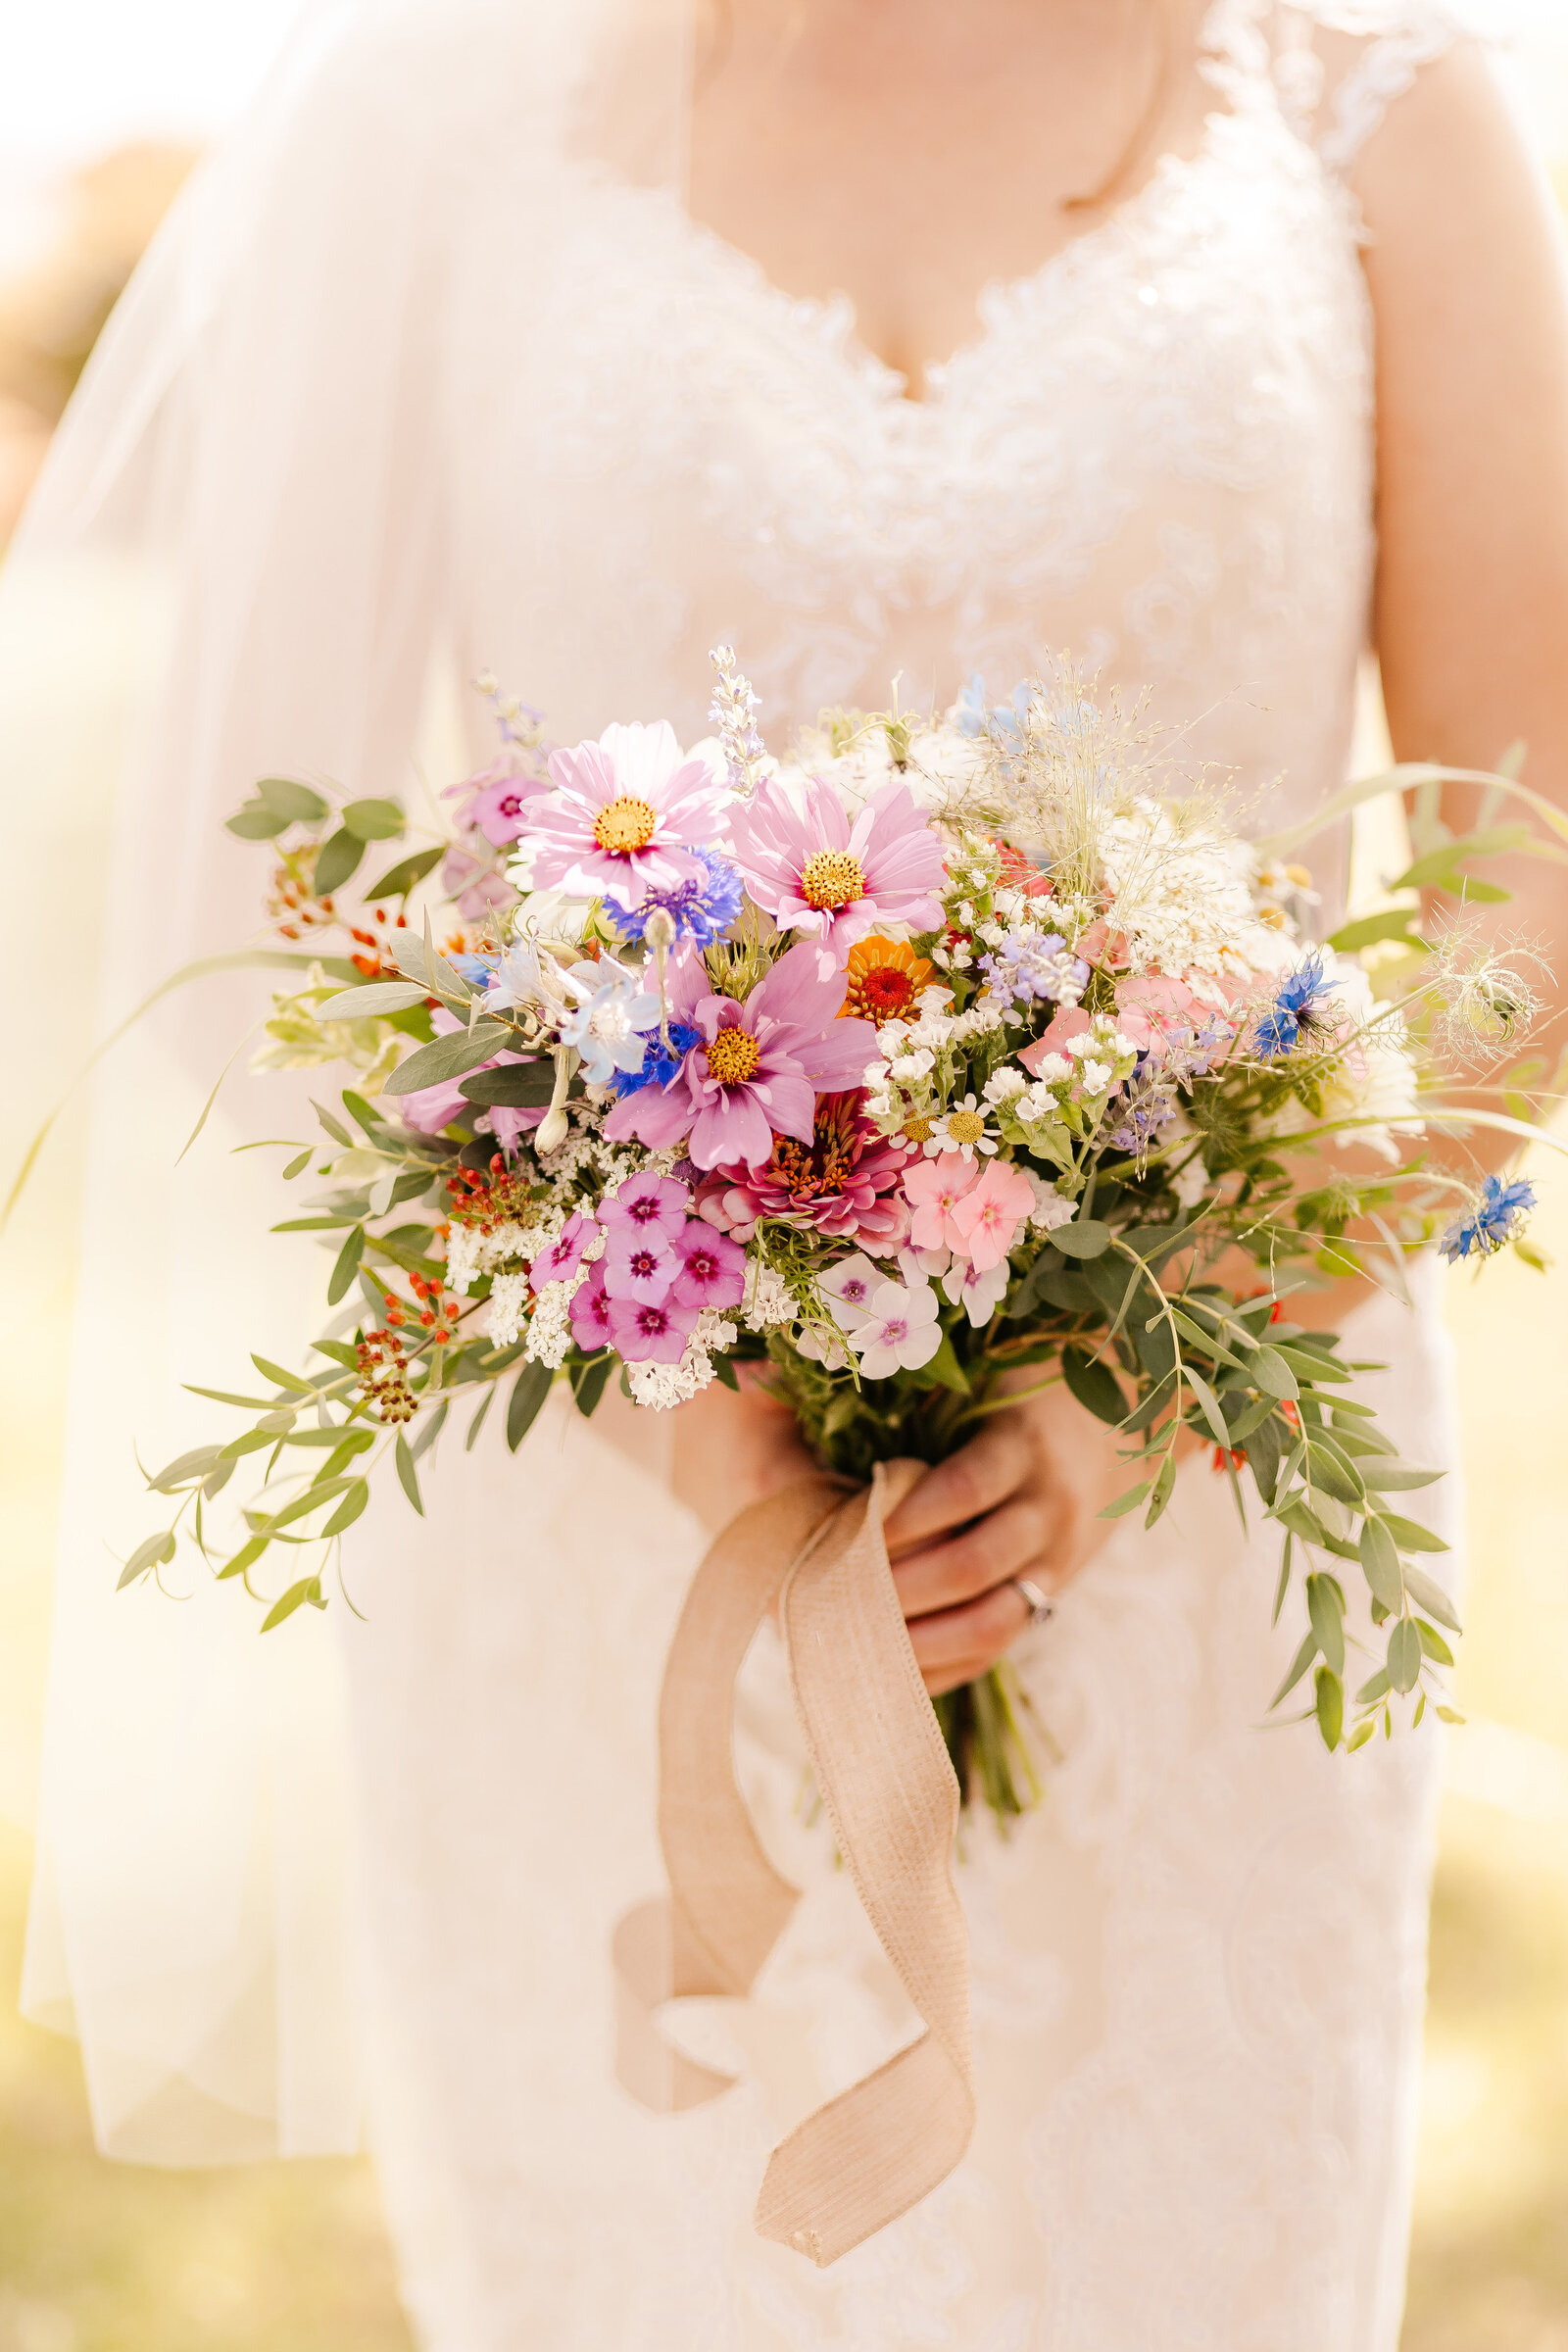 A Rustic Inspired Wedding at Ferry Watch (117 of 273)